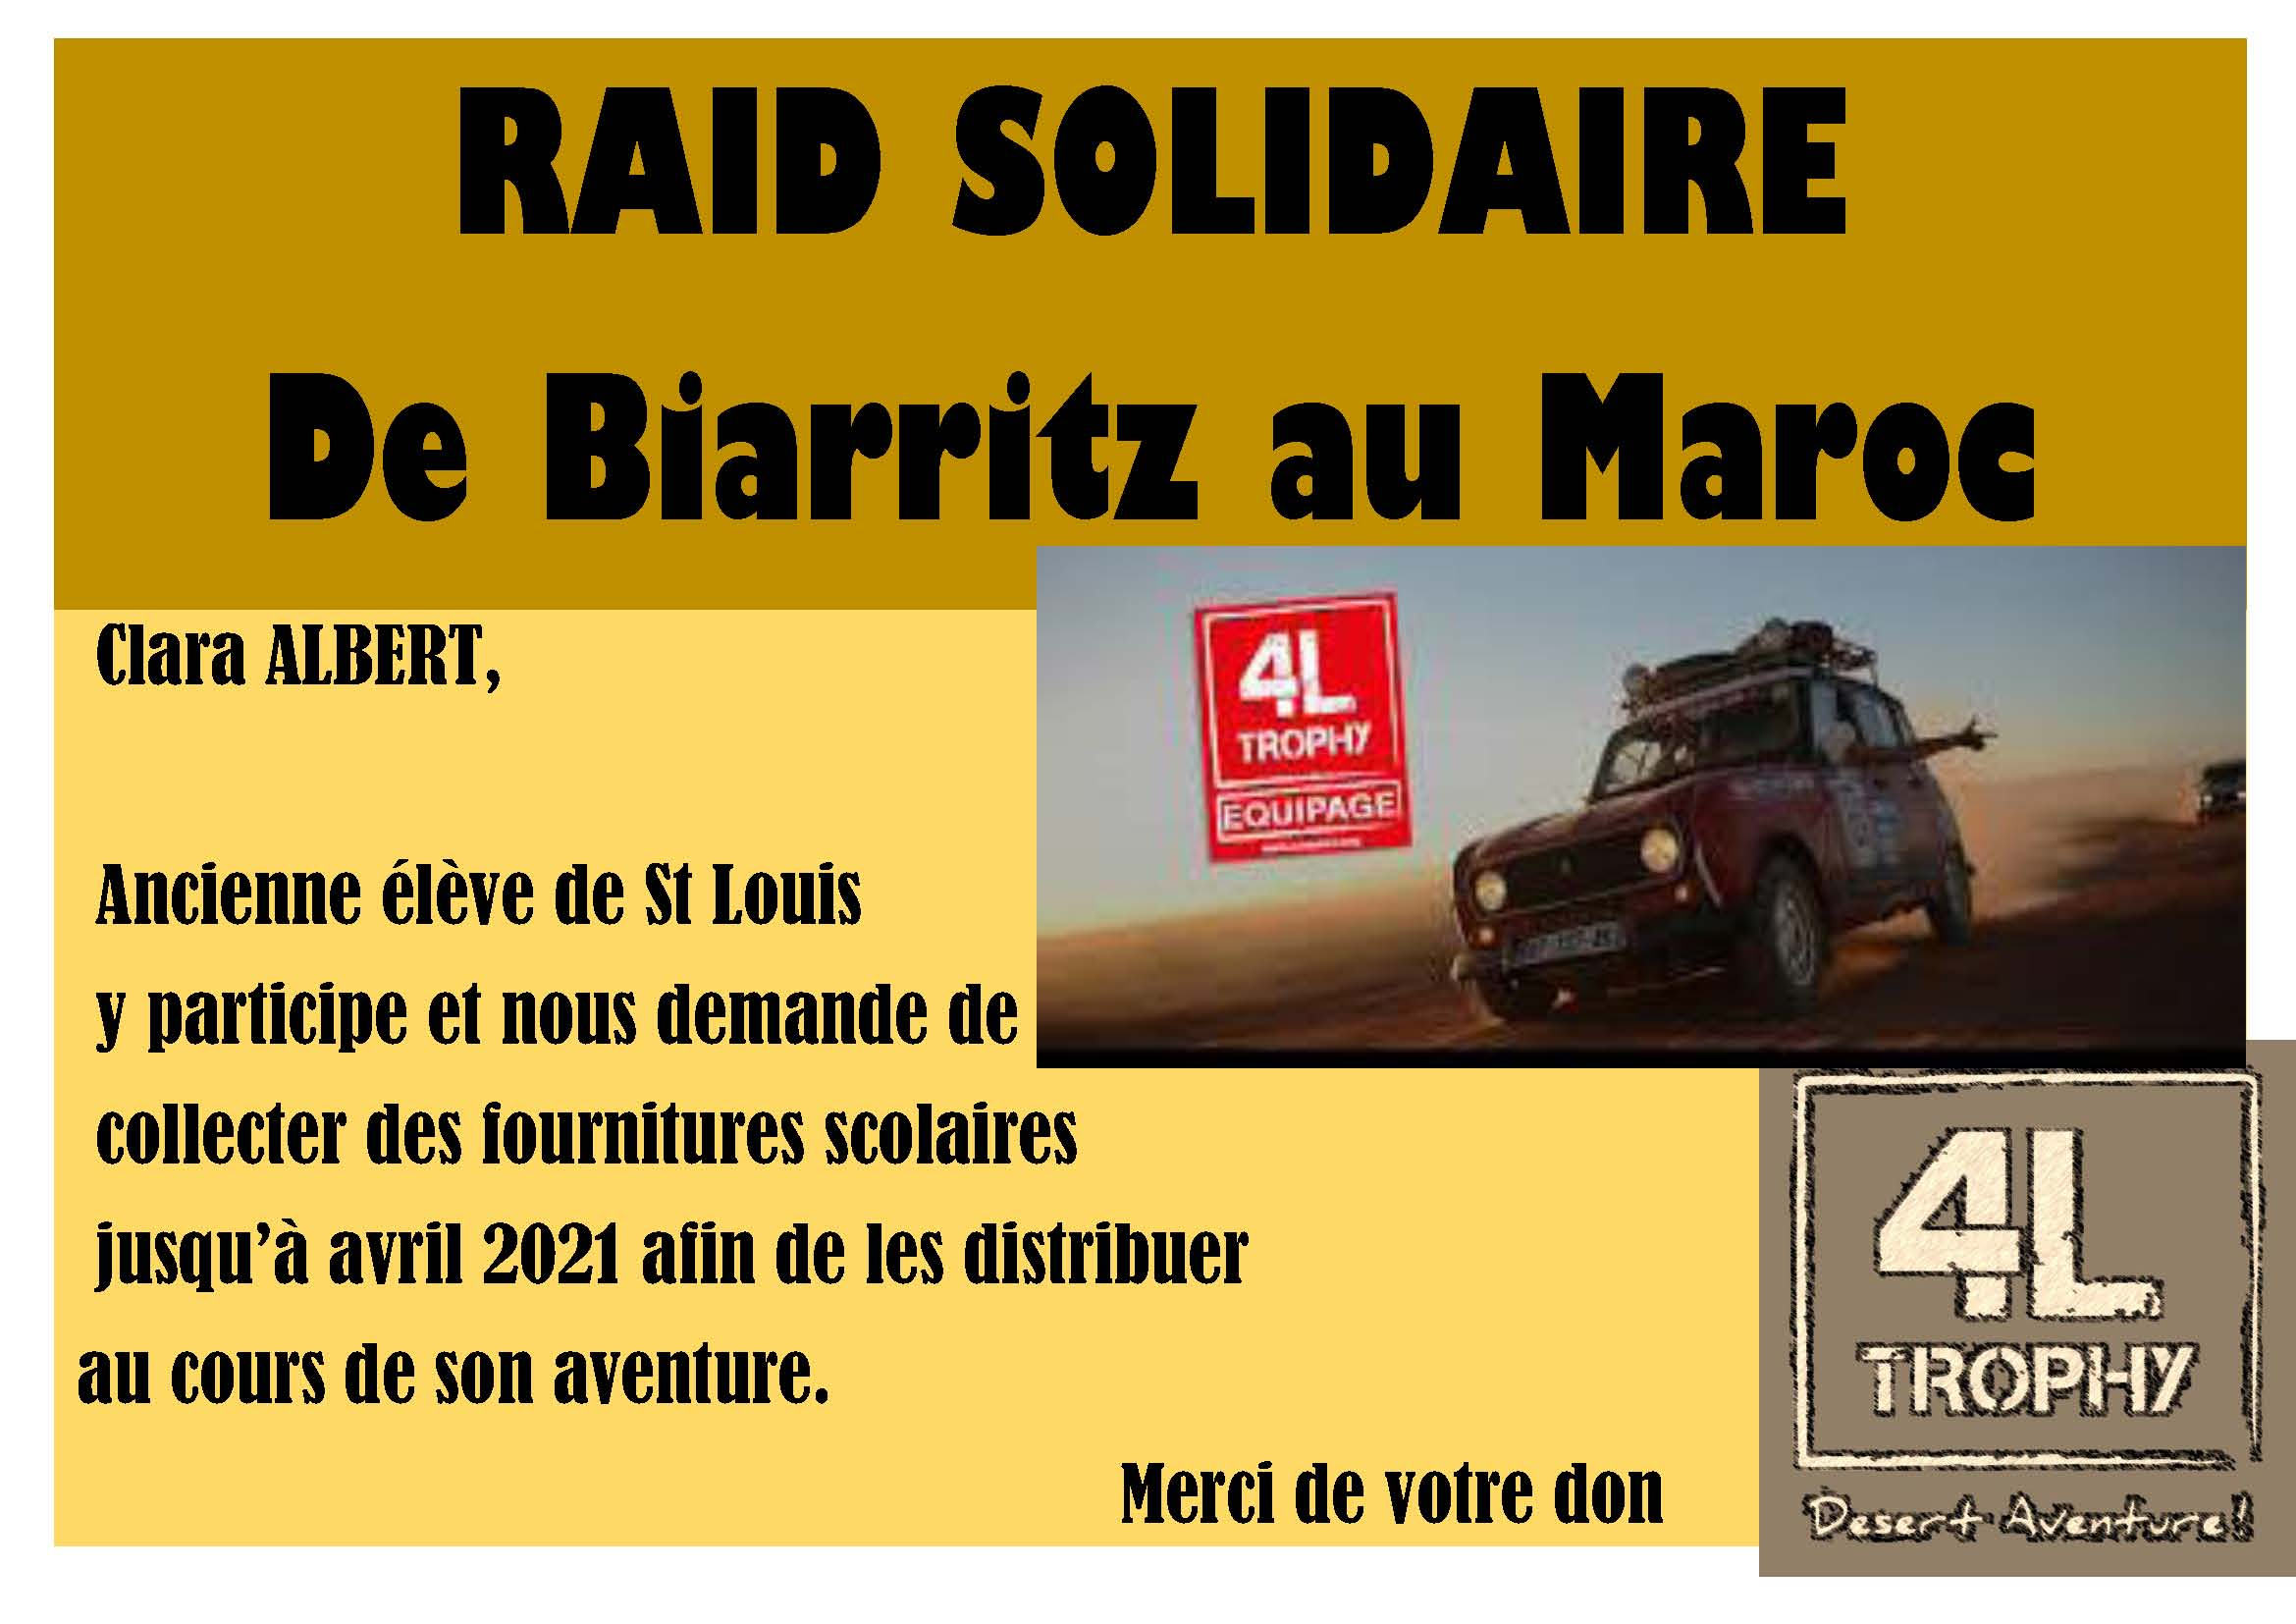 Raid Solidaire